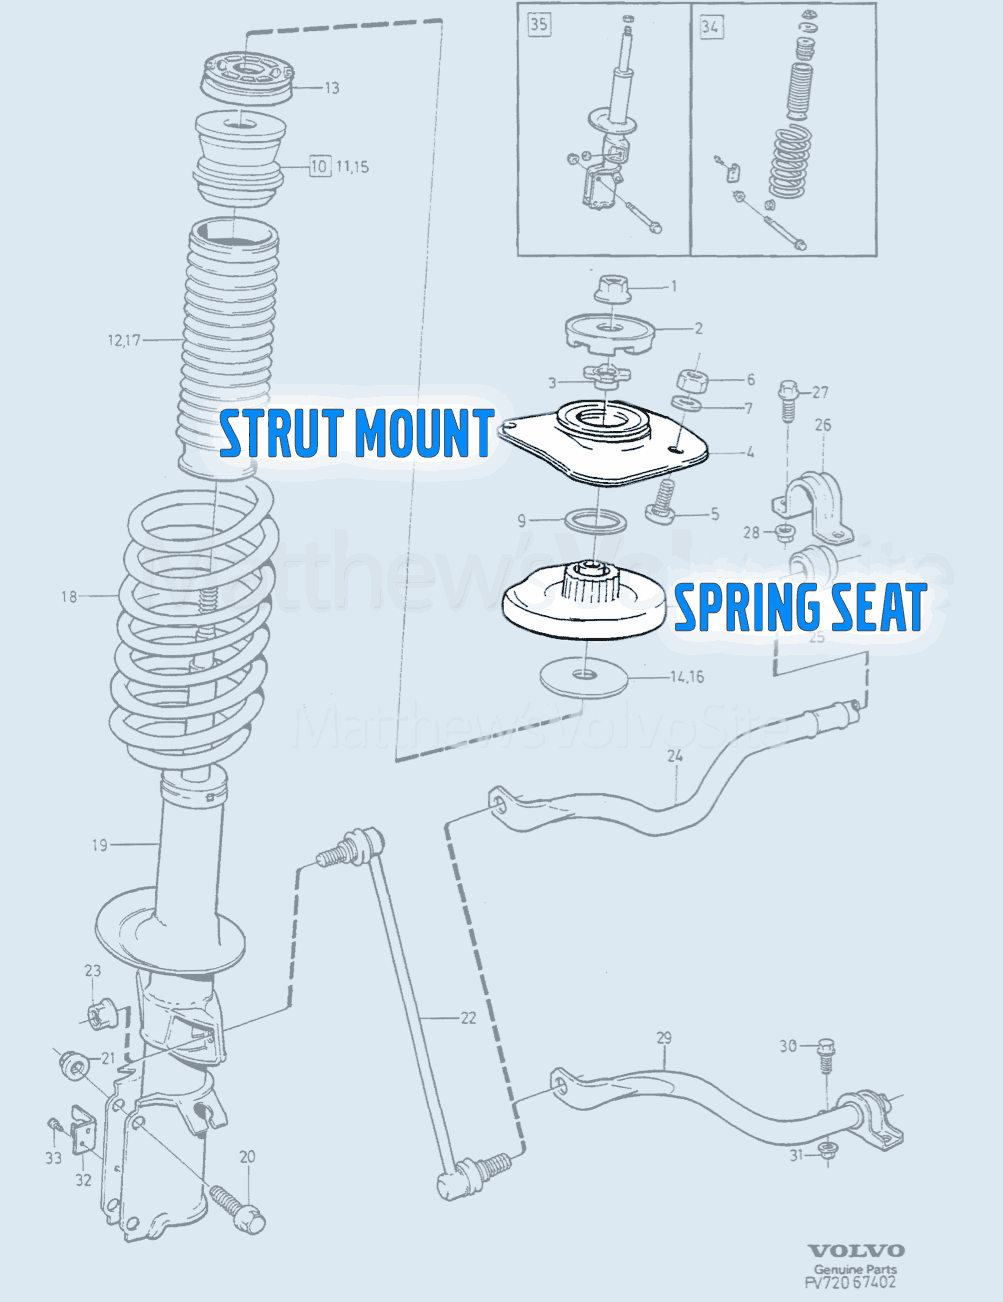 Strut mount or spring seat? Here's how to know.